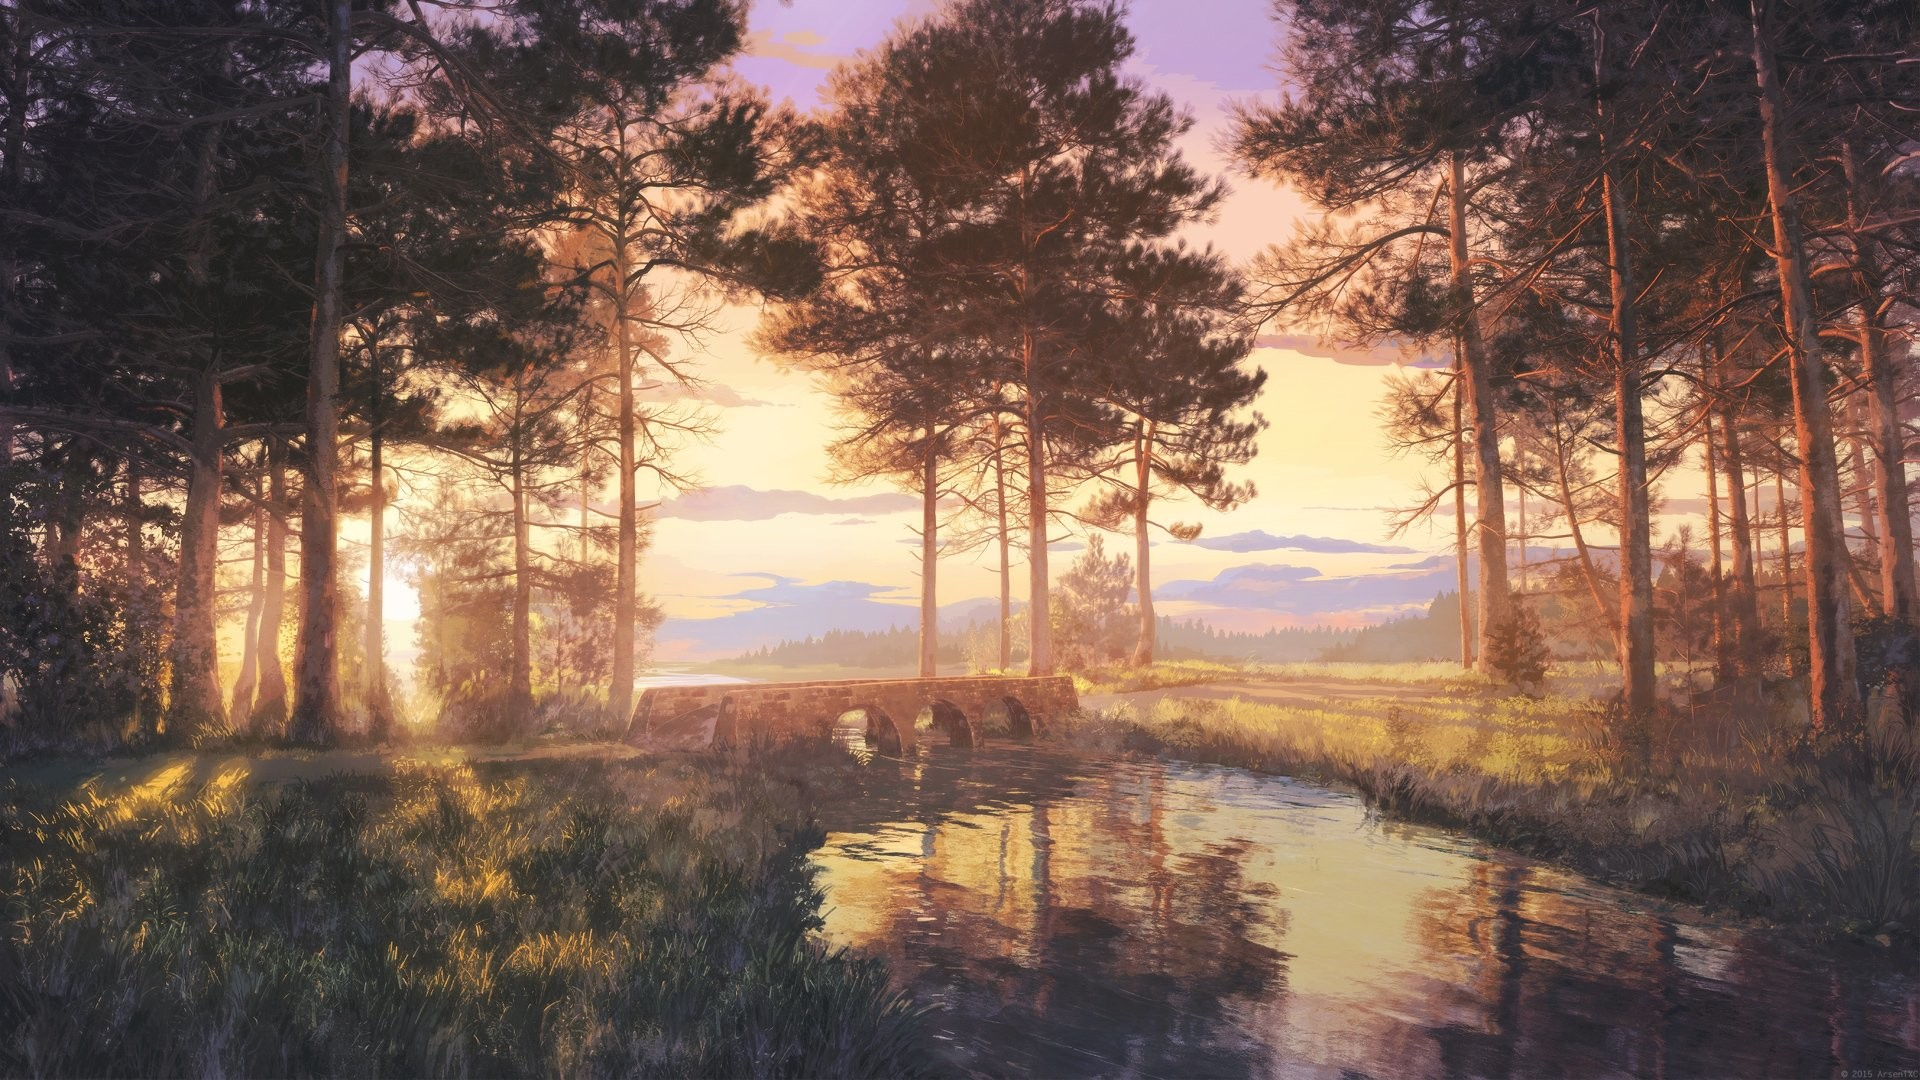 Res: 1920x1080, Anime beautiful landscape nature scan forest sunlight lake wallpaper |   | 648651 | WallpaperUP